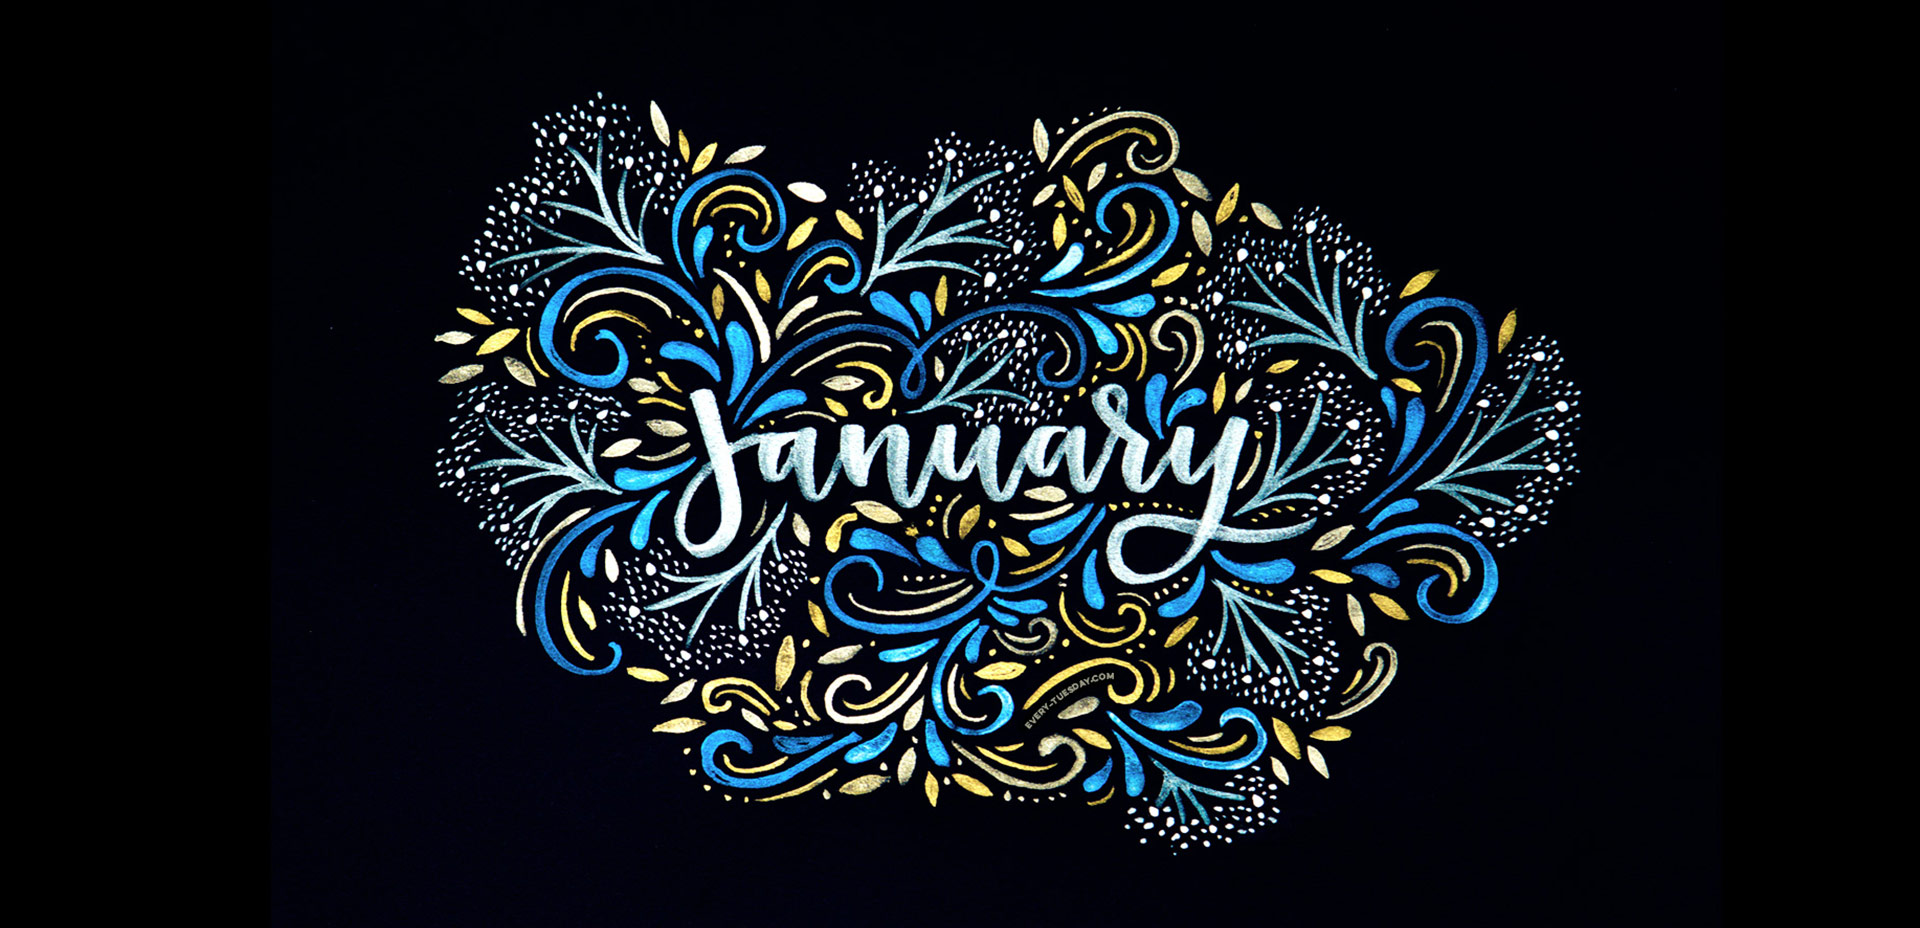 Freebie: January 2017 Desktop Wallpapers  EveryTuesday